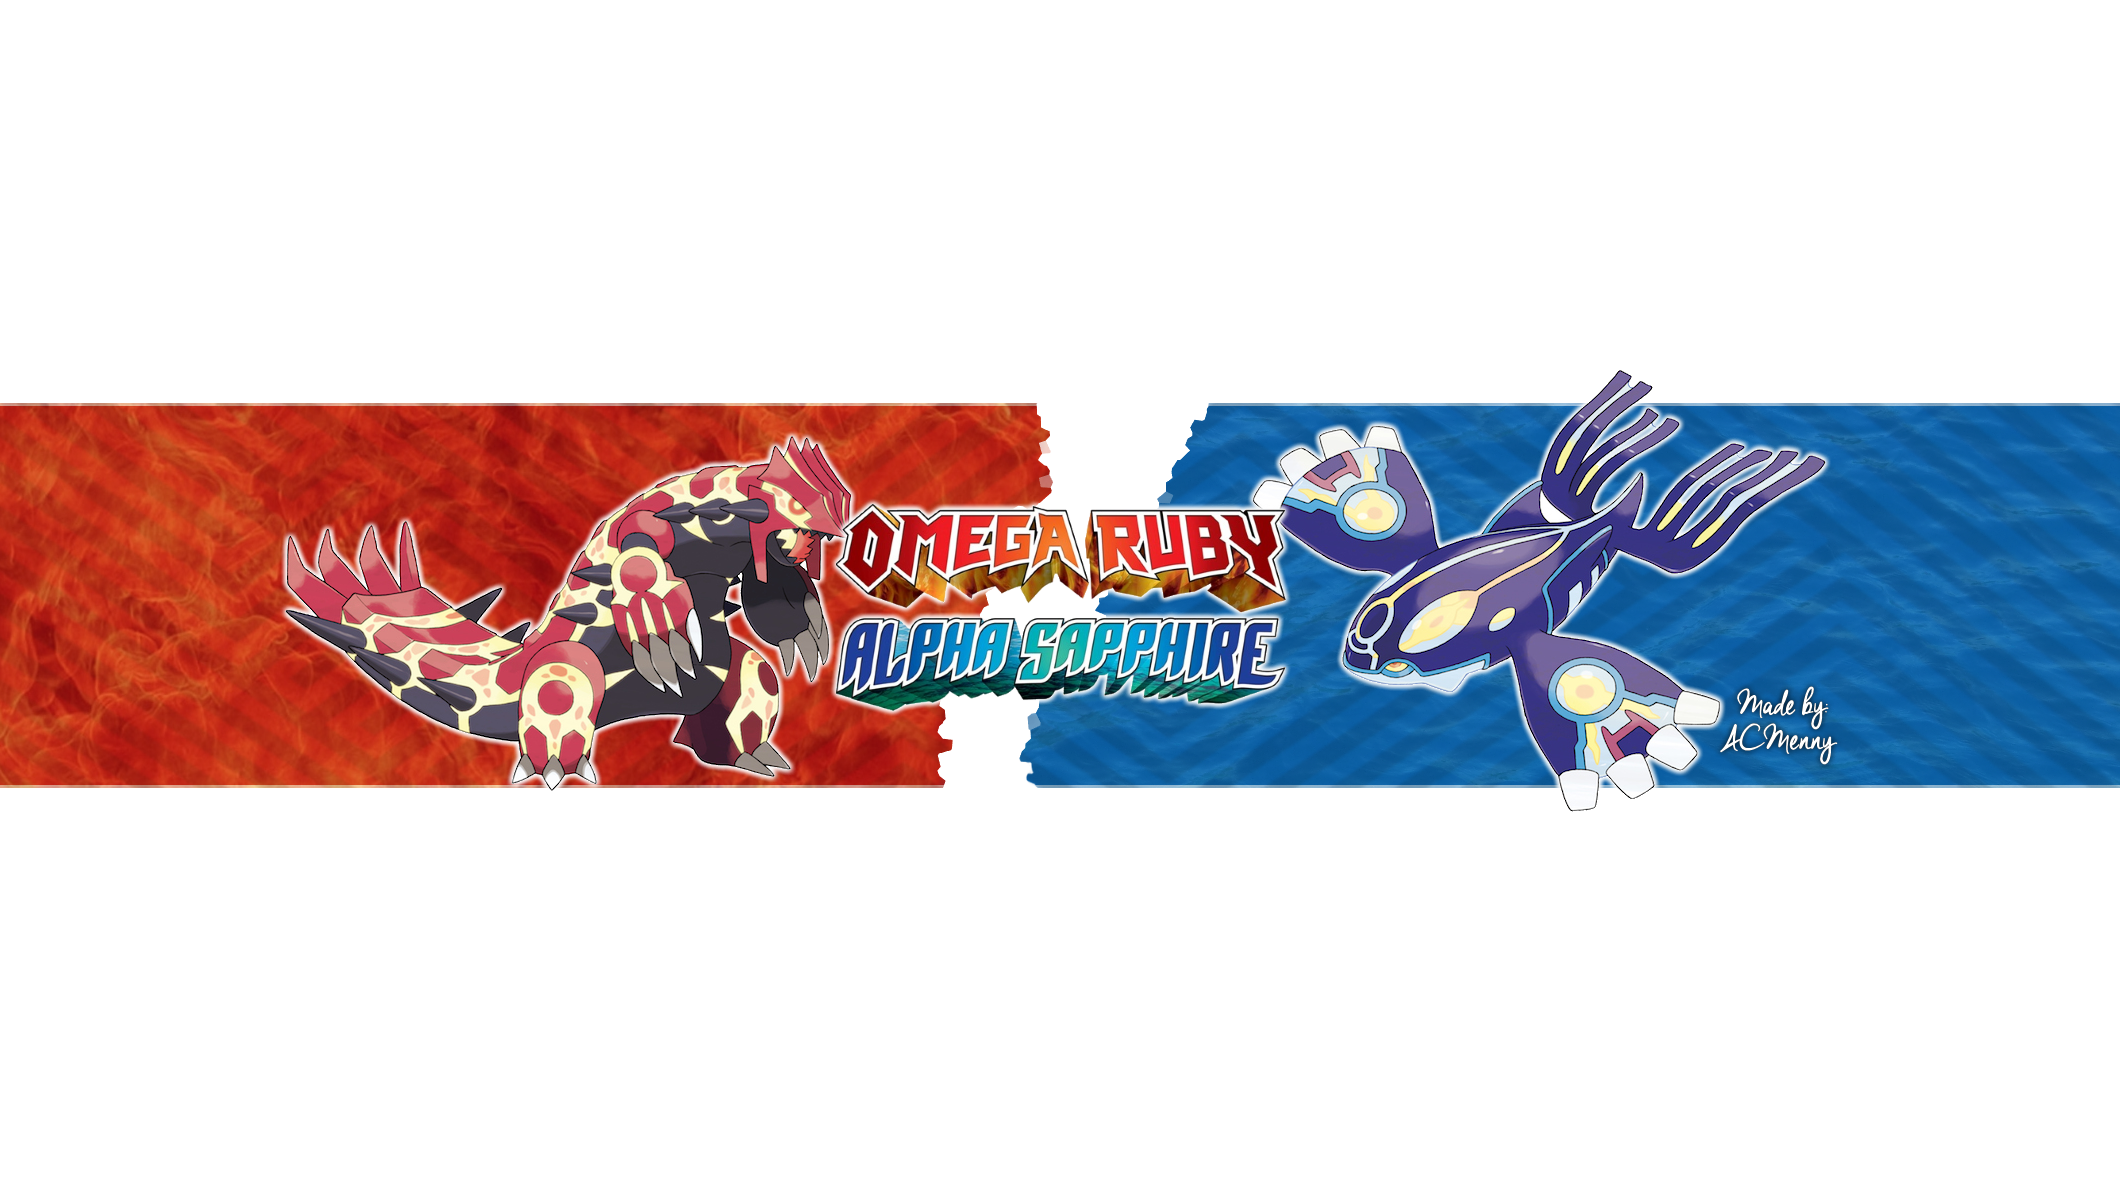 pokemon omega ruby alpha sapphire youtube banner by acmenny on deviantart. Black Bedroom Furniture Sets. Home Design Ideas